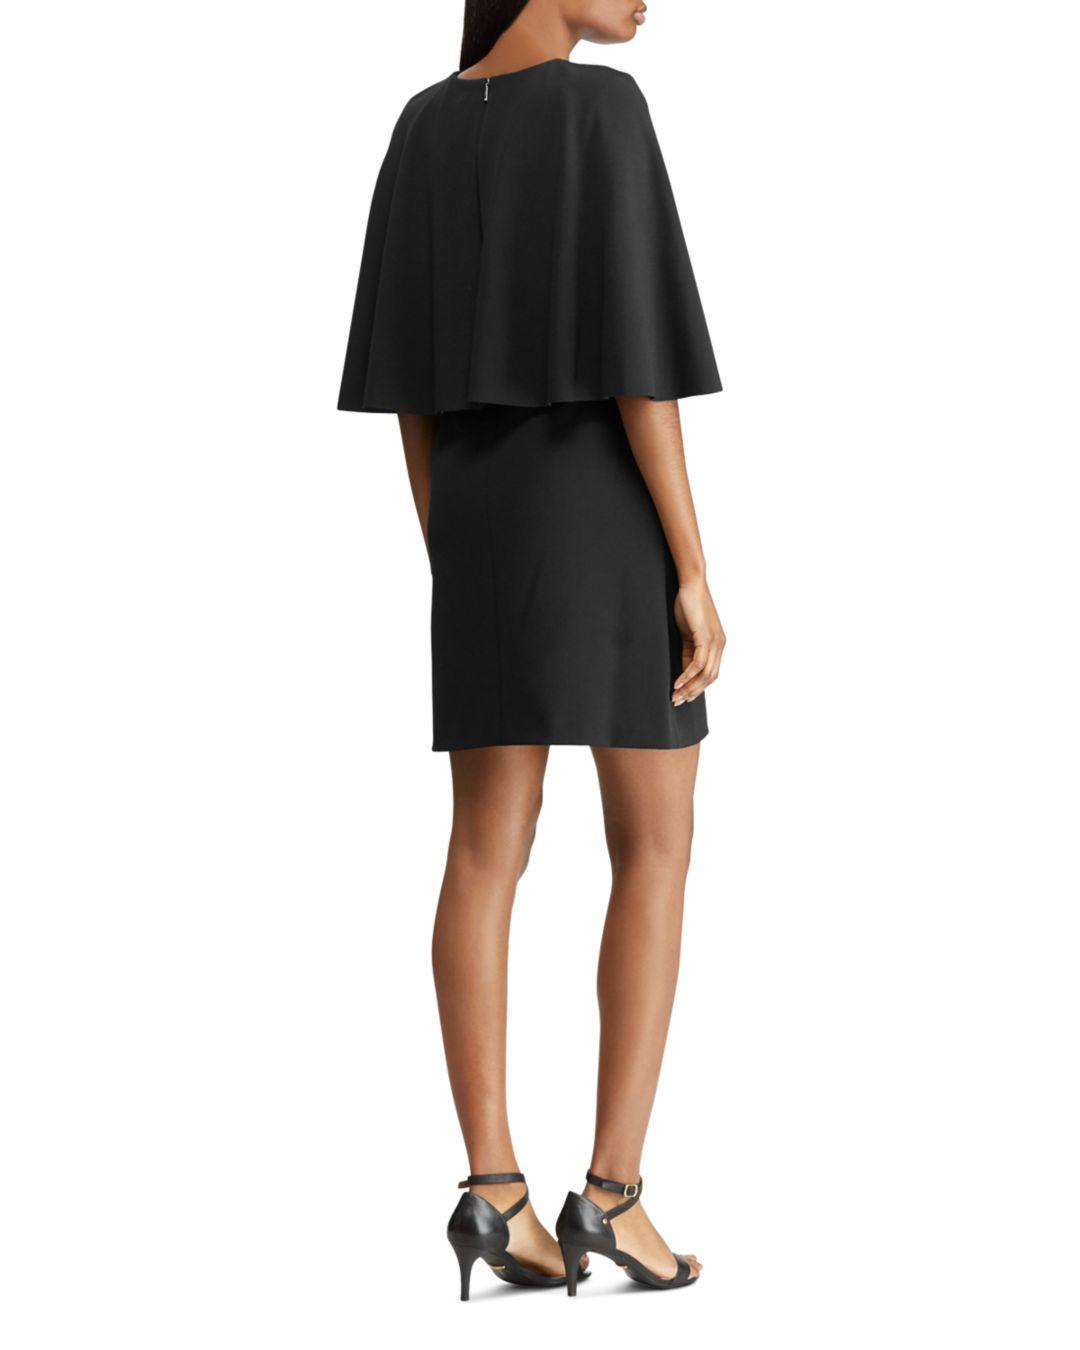 05461841ebb4 Lyst - Ralph Lauren Lauren Cape Overlay Dress in Black